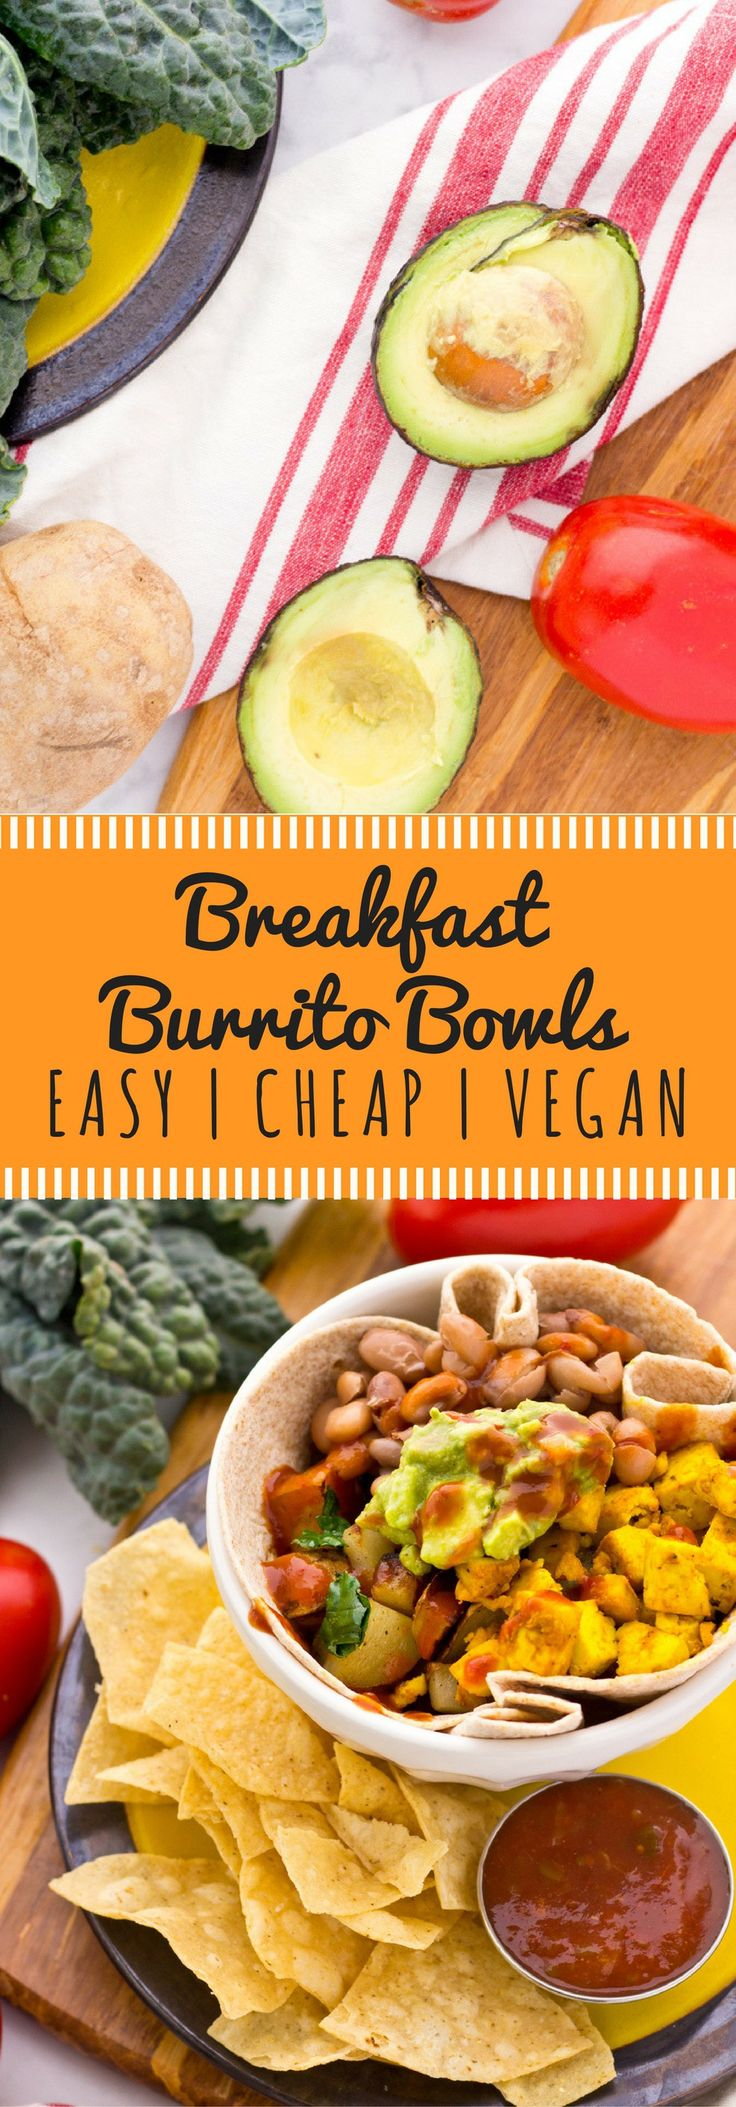 Vegan Breakfast Burrito Bowl with organic tofu scramble! This is my absolute favorite easy, cheap, vegan breakfast recipe on a budget